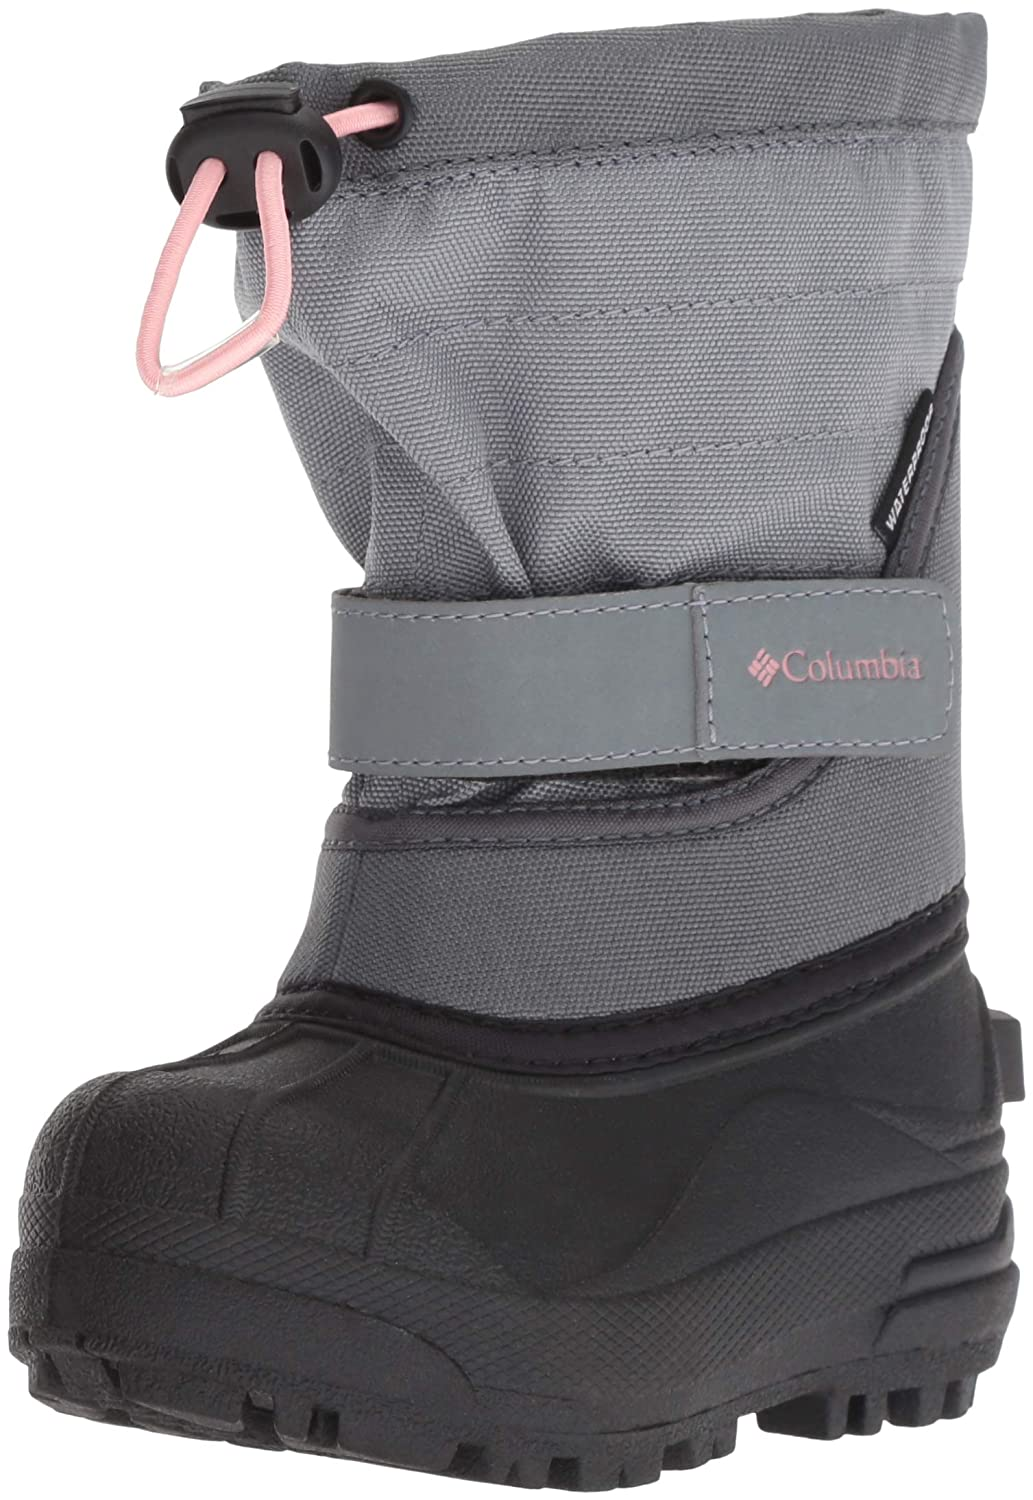 Columbia Kids' Powderbug Plus II Boot, Toddler